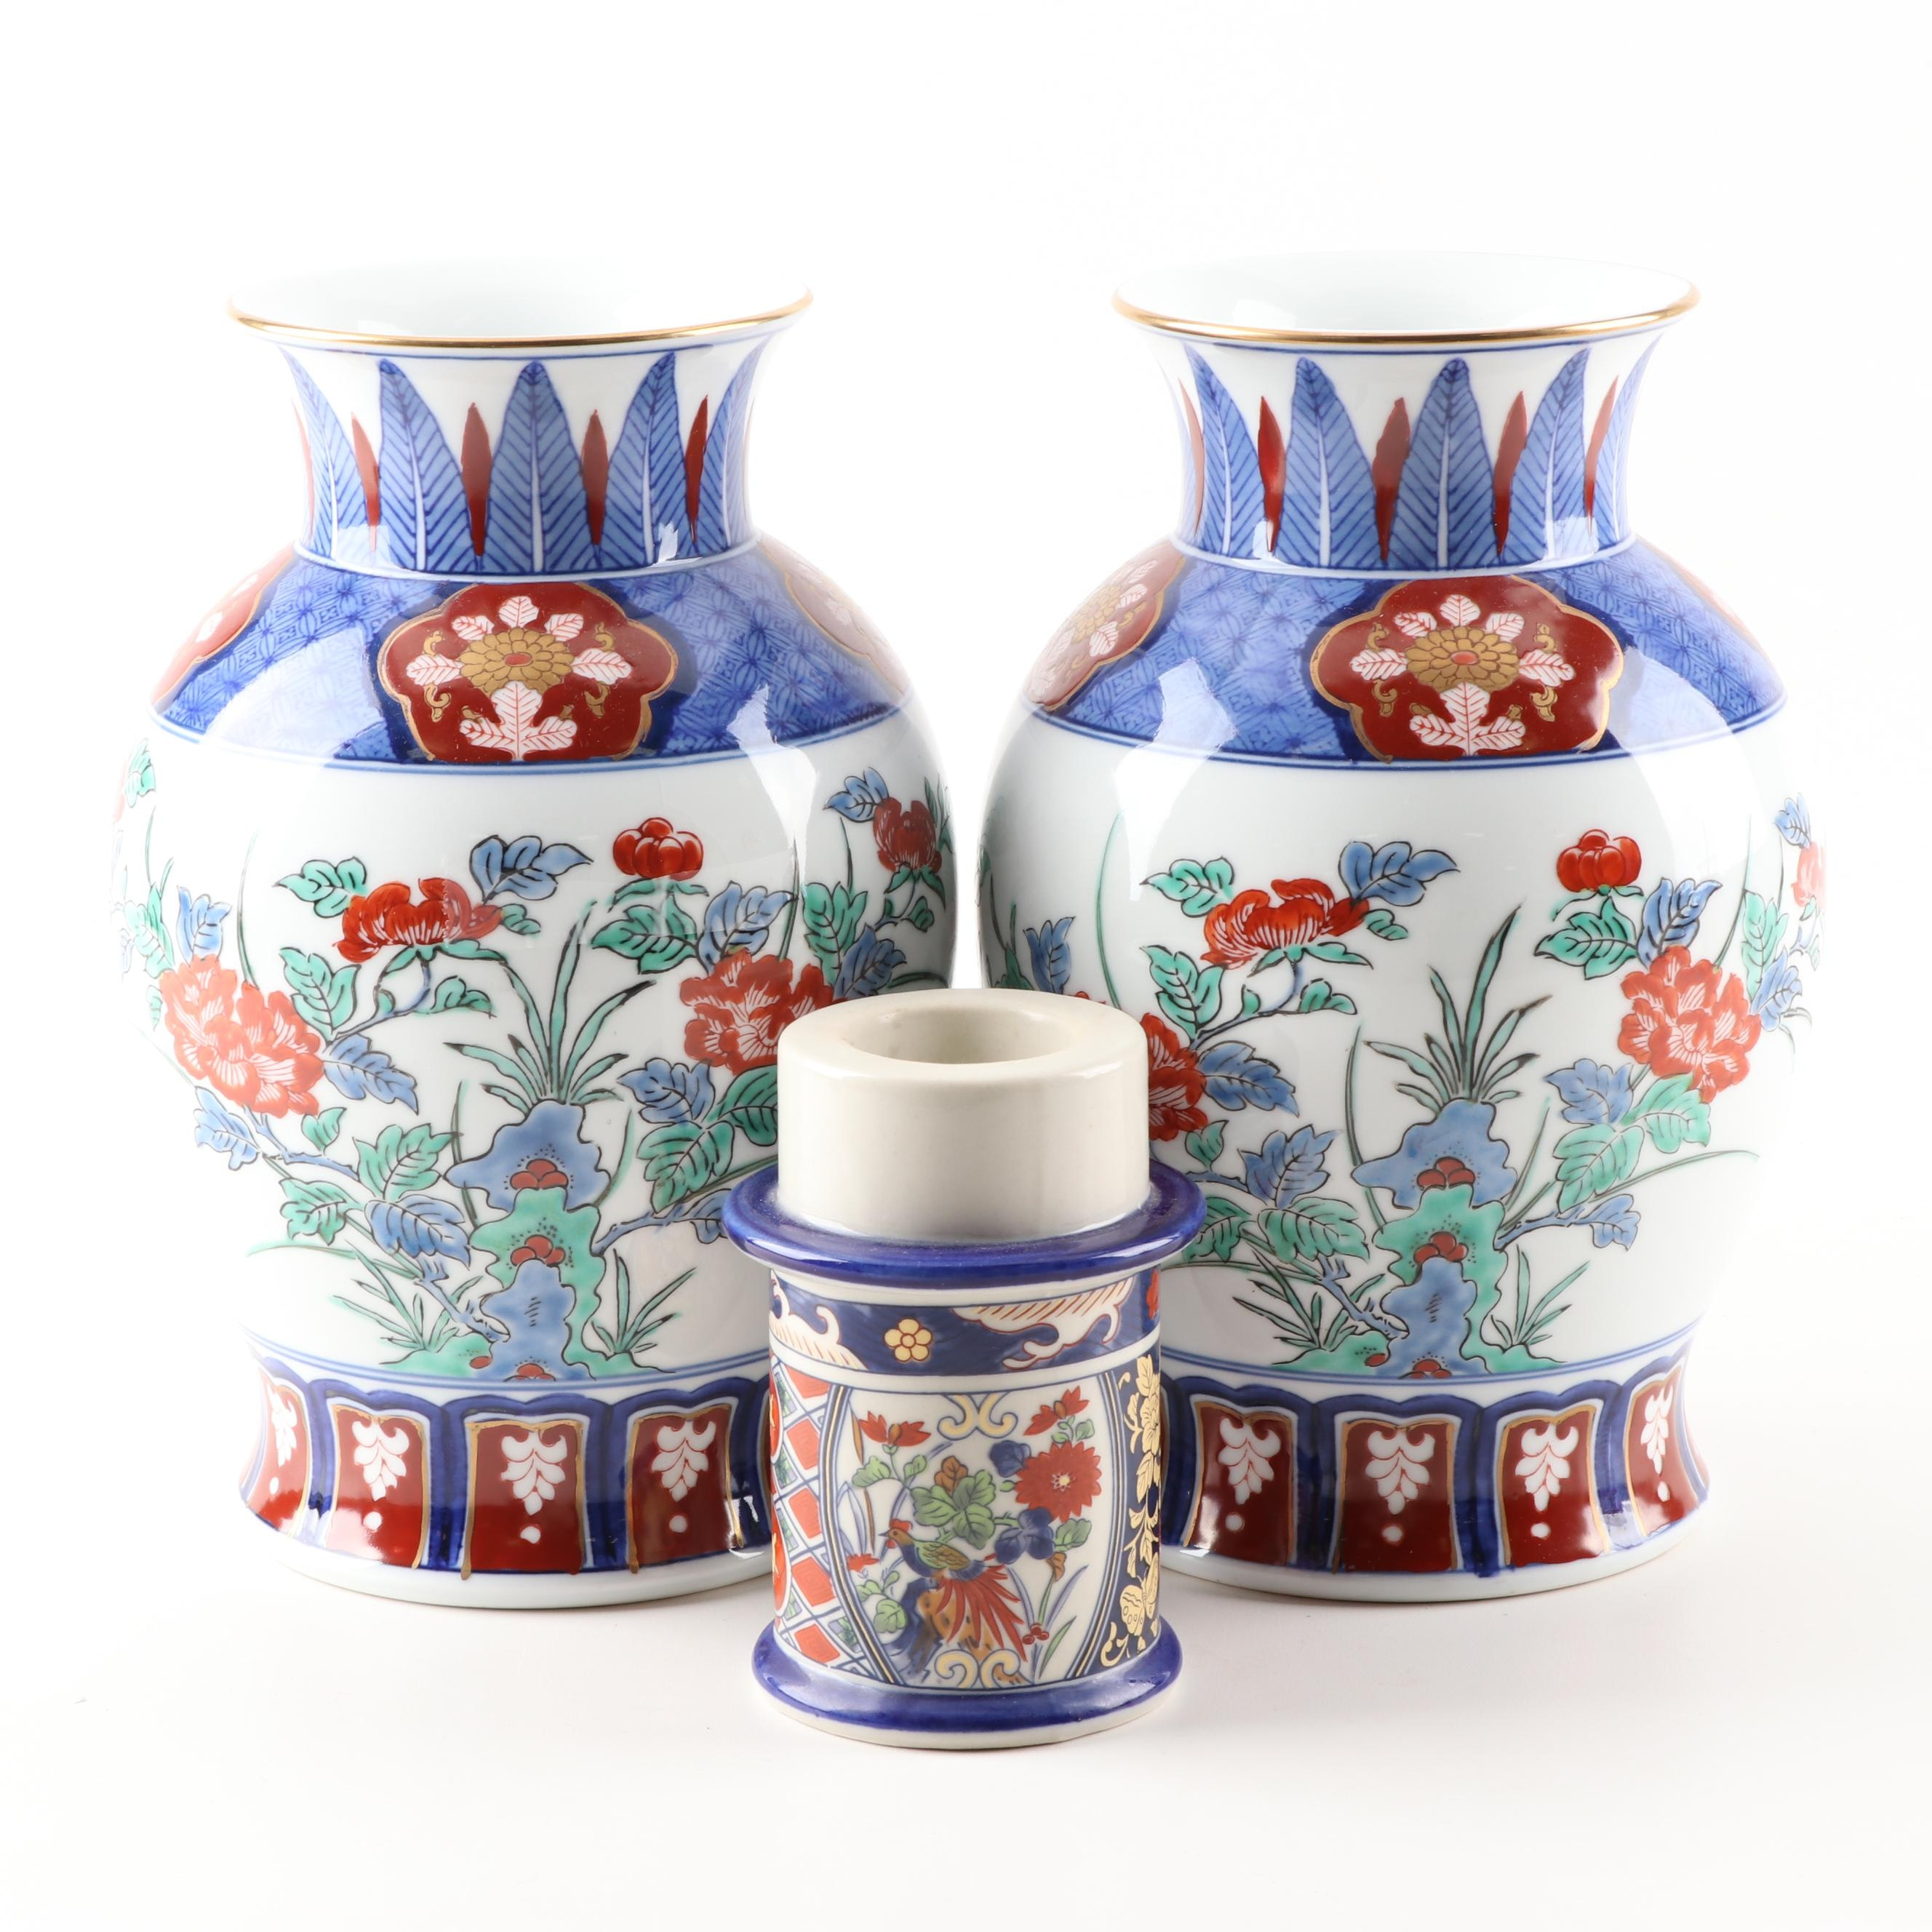 Porcelain Imari Vases and Candle Holder